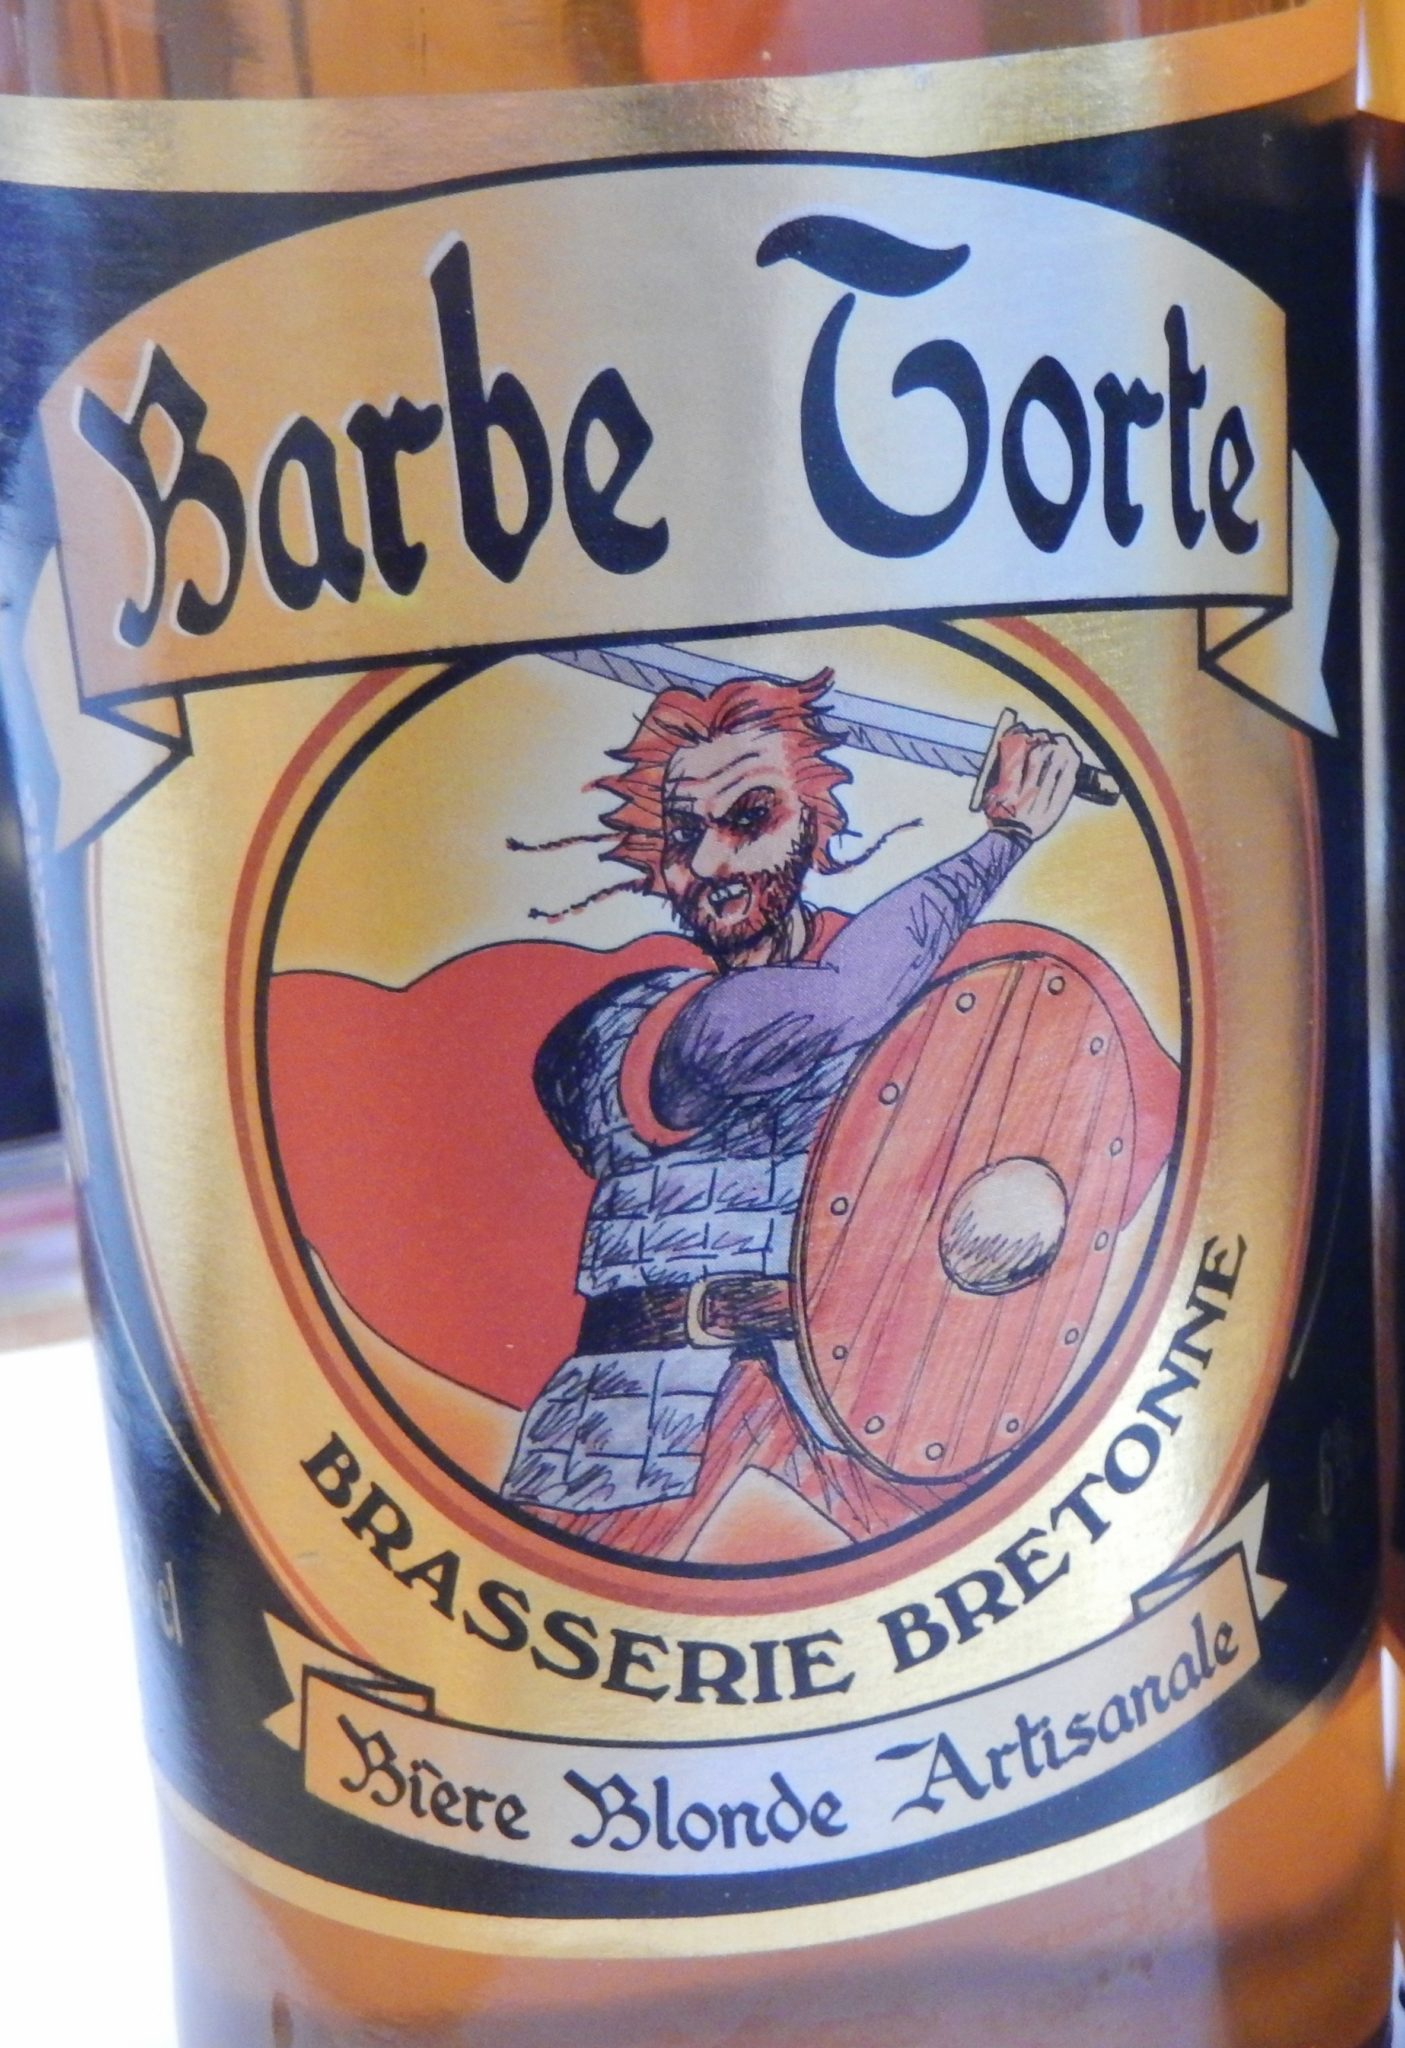 Barbe Torte, an award winning Breton beer